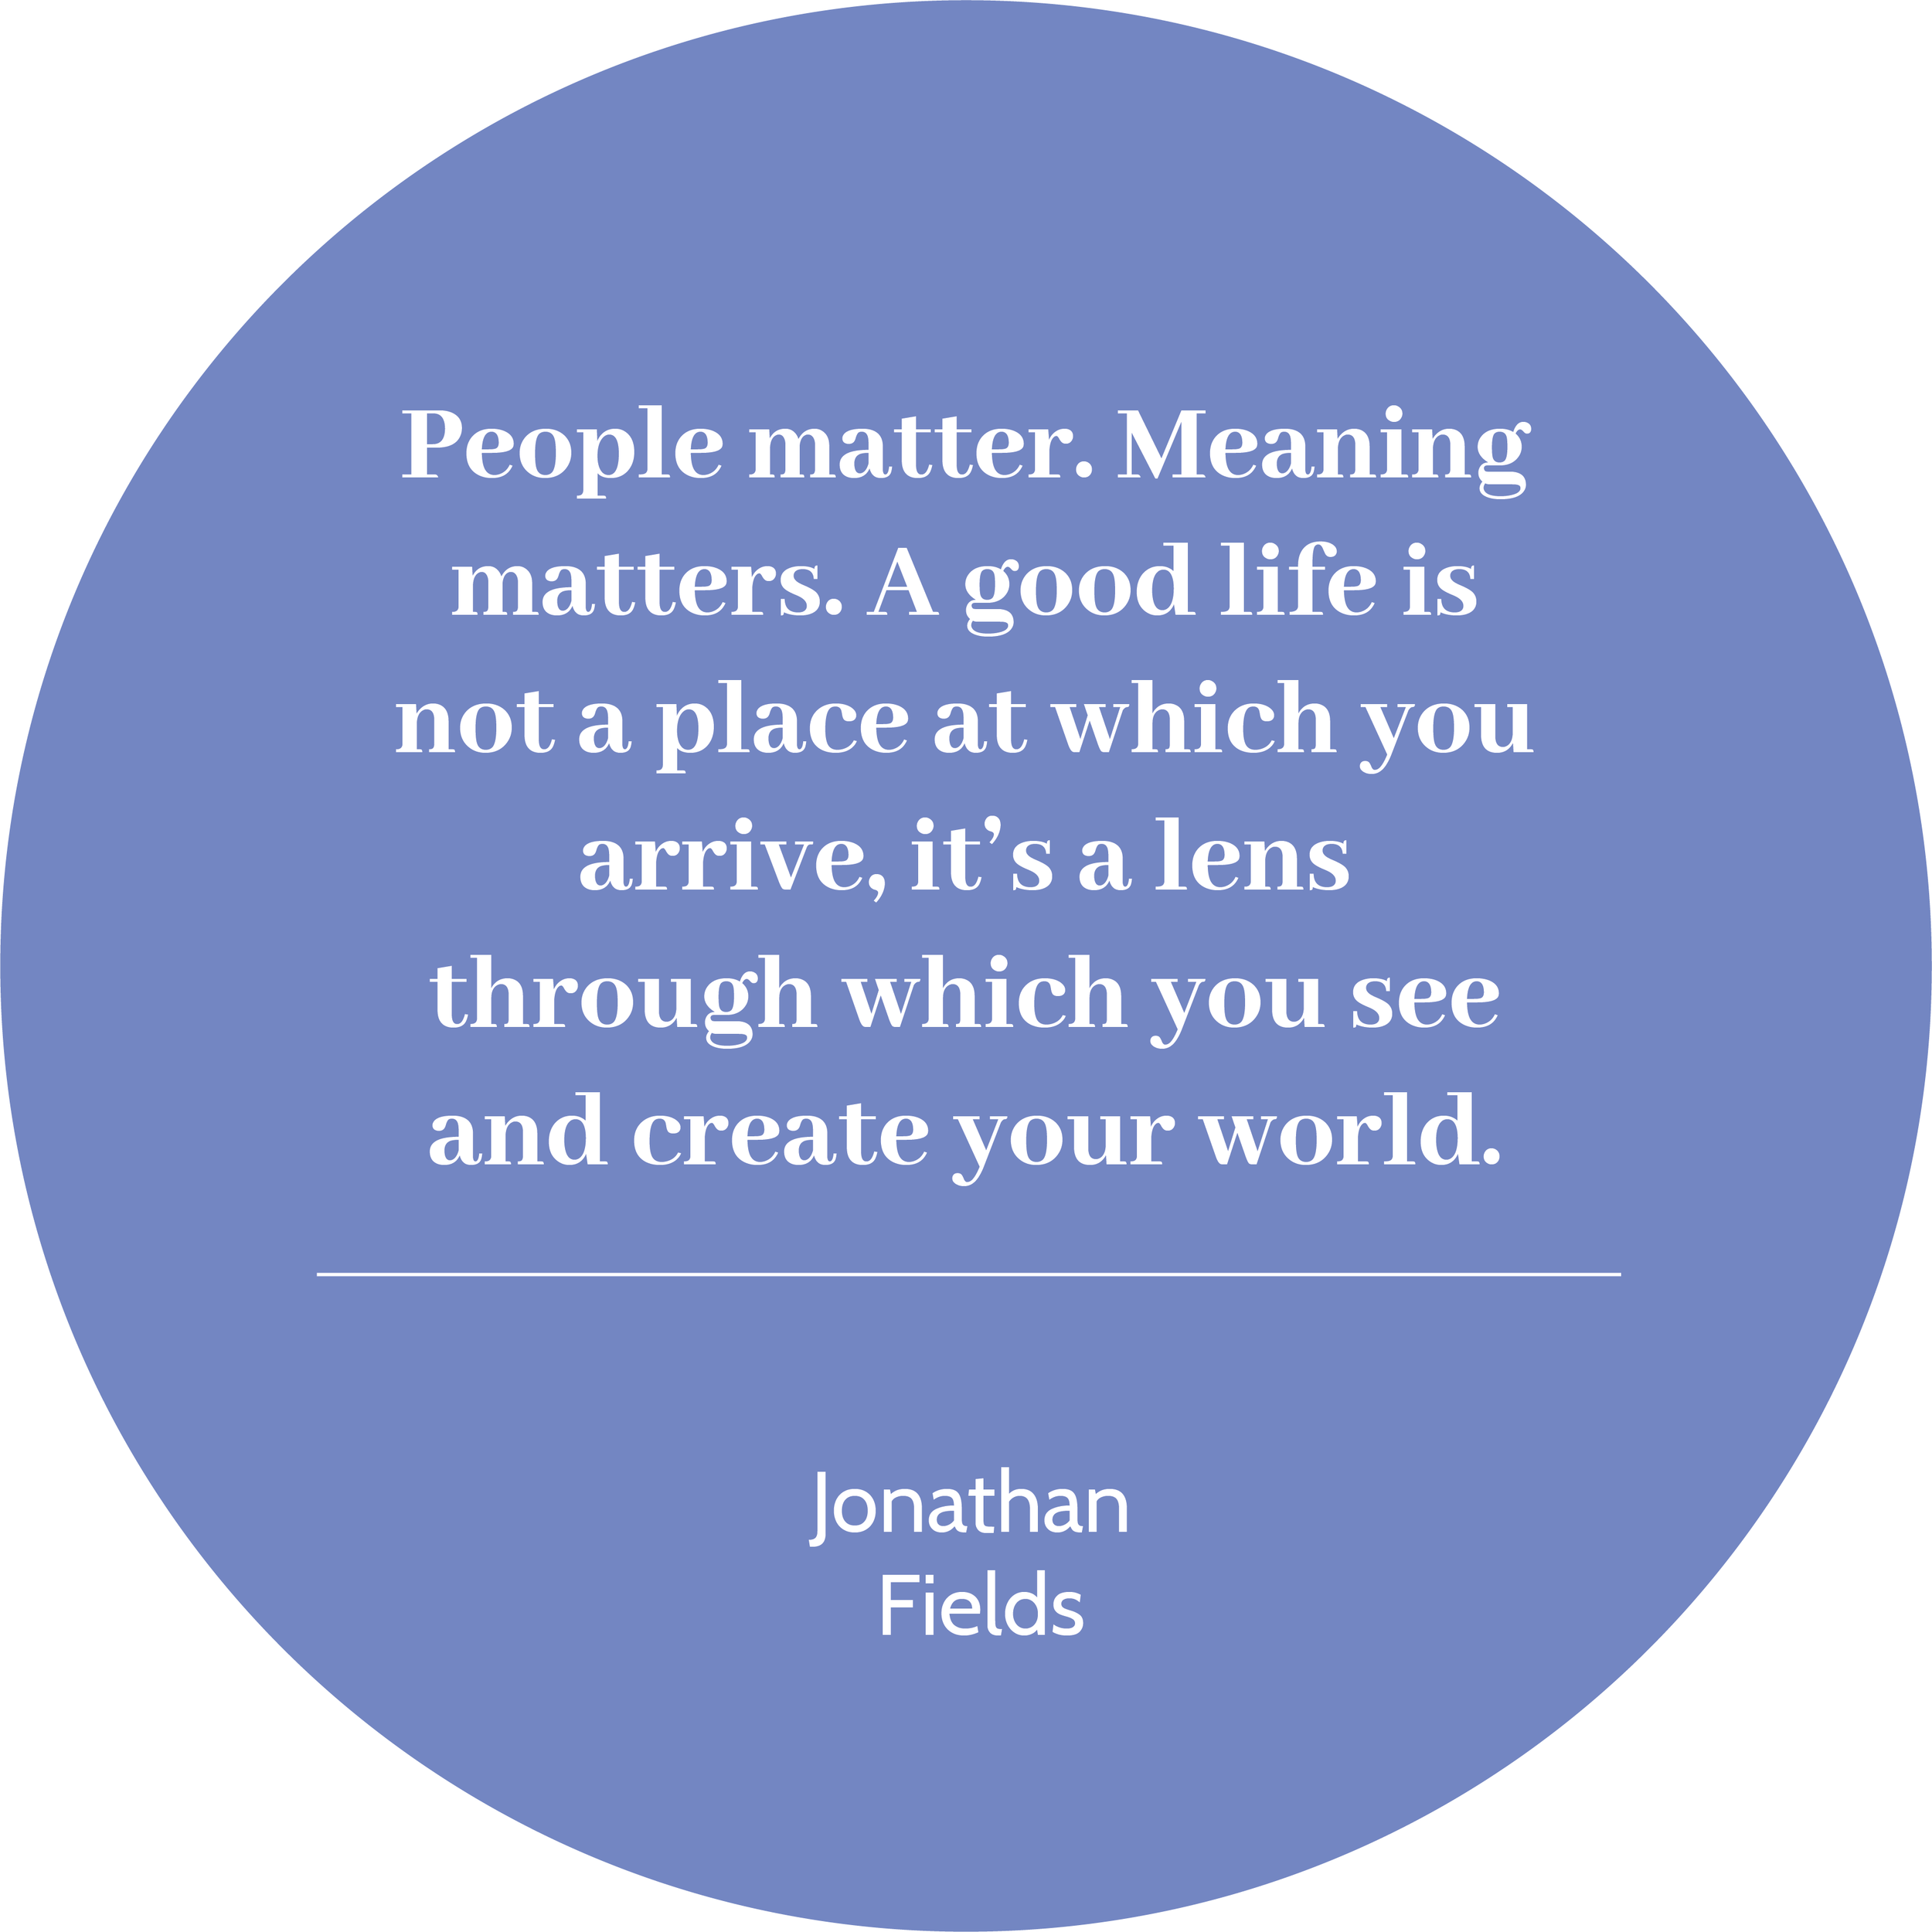 Jonathan Fields quote 2019.04.24.png